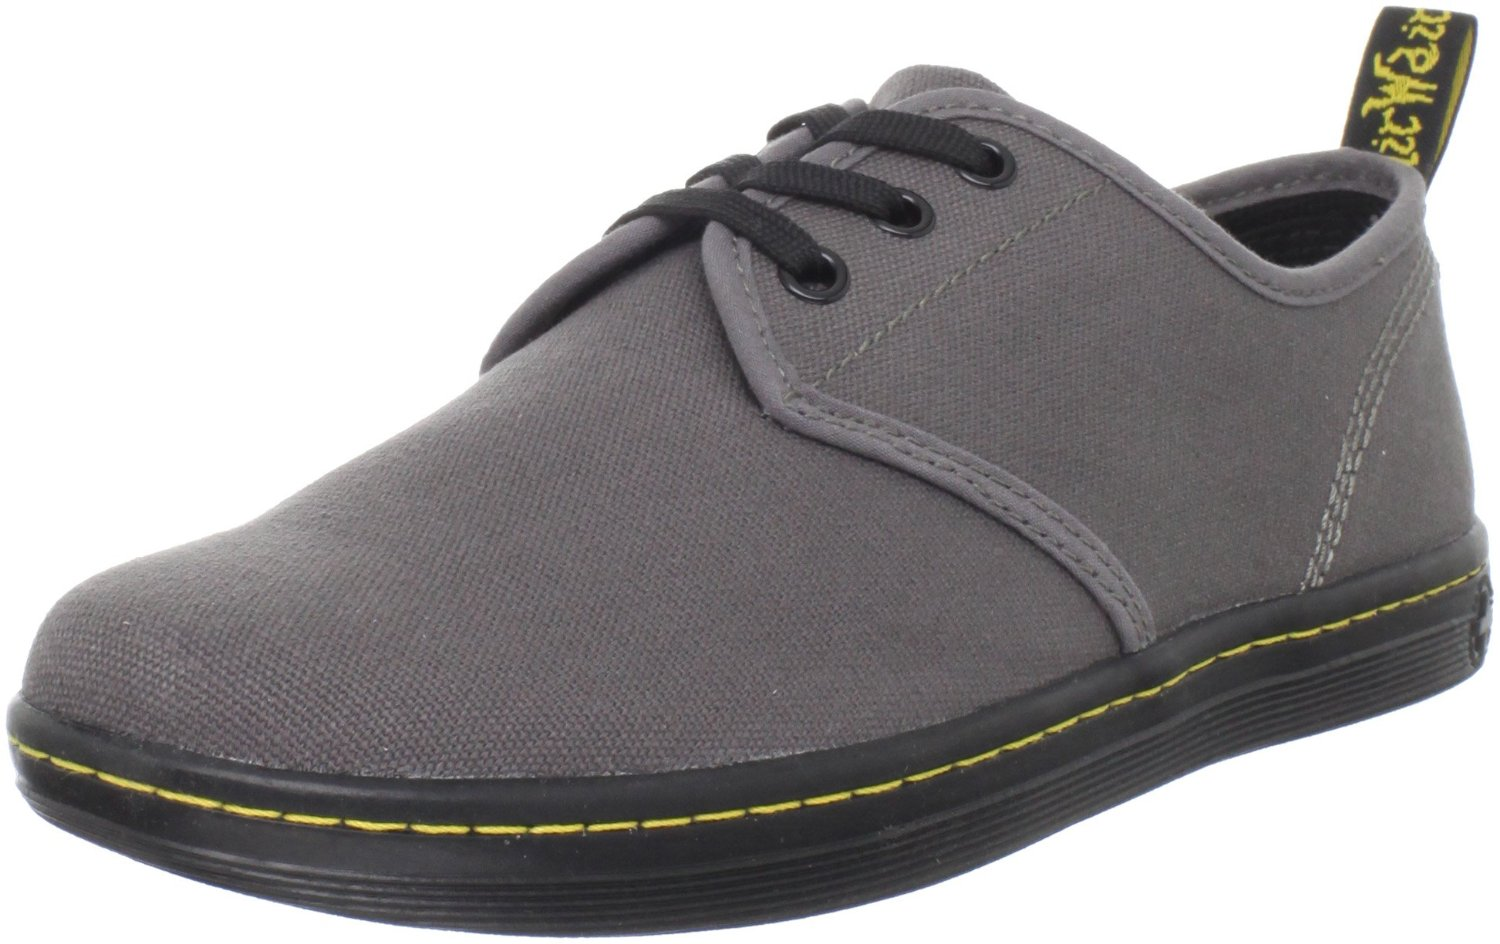 Dr. Martens Dr Martens Womens Soho Shoe in Gray (dark grey canvas